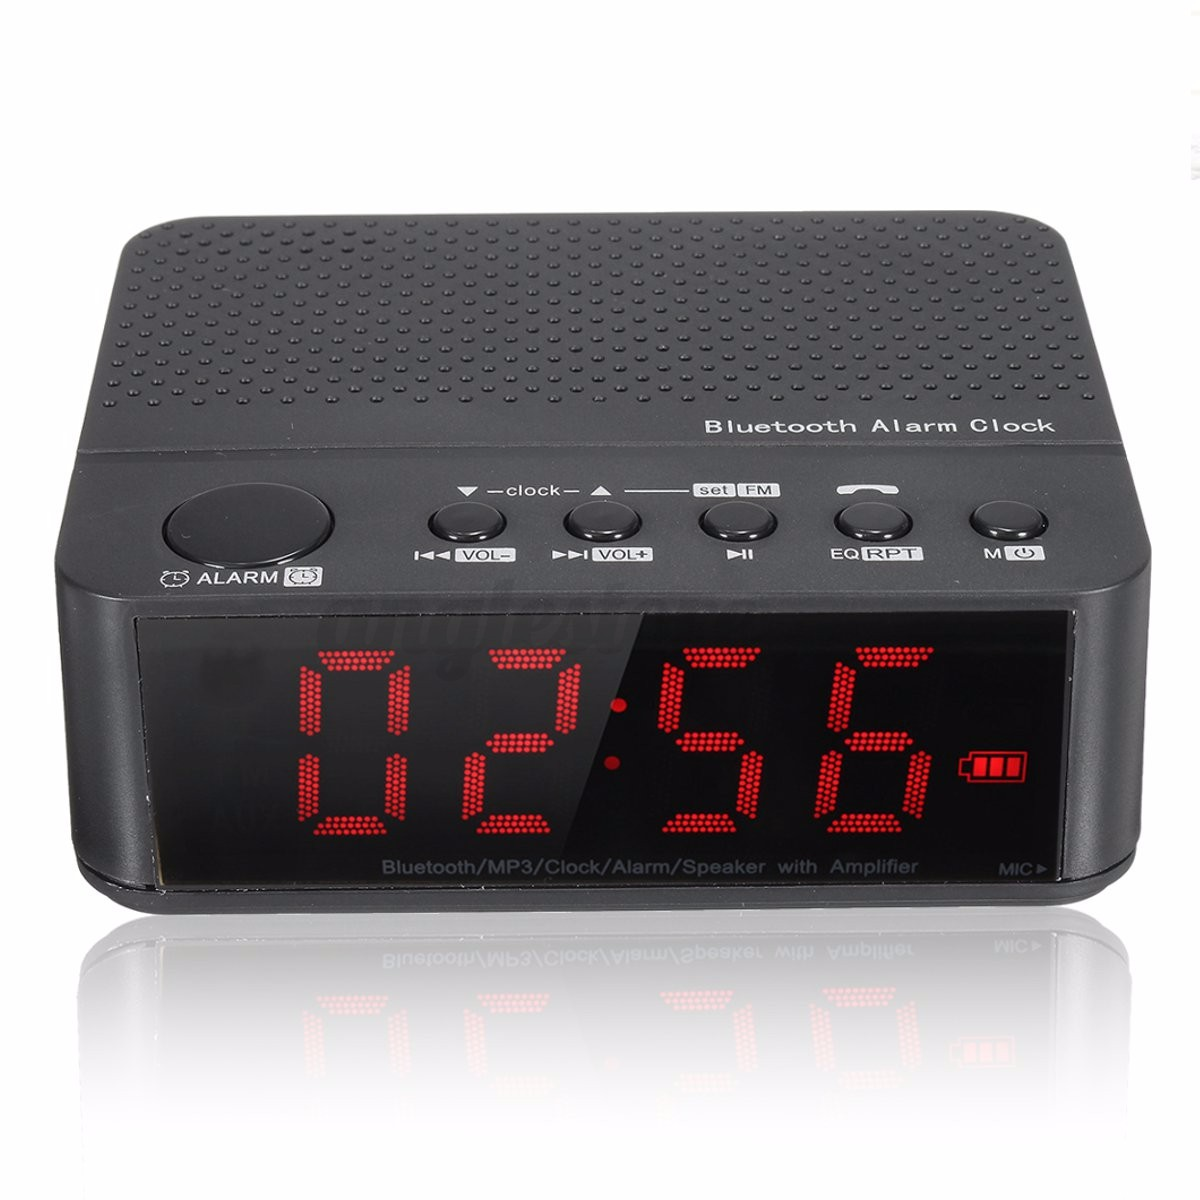 bluetooth digital led display alarm clock speaker amplifier fm radio mp3 player ebay. Black Bedroom Furniture Sets. Home Design Ideas